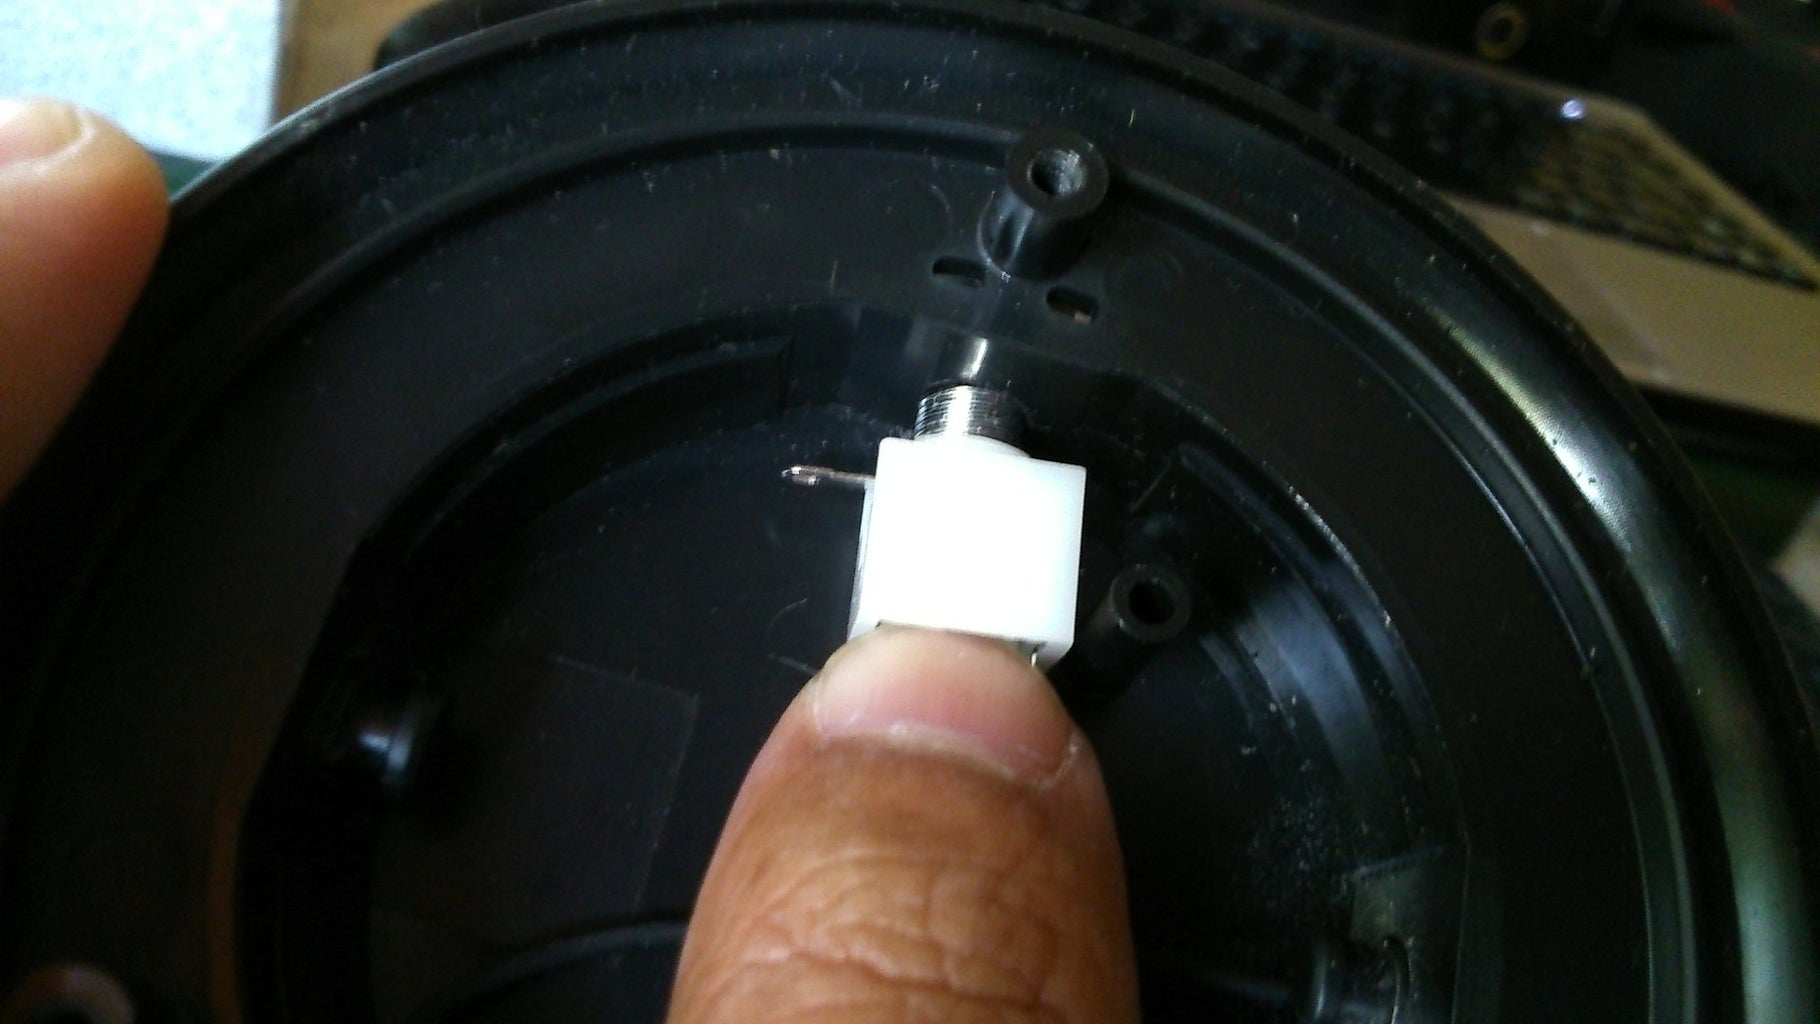 Installing the 3.5mm Stereo Jack